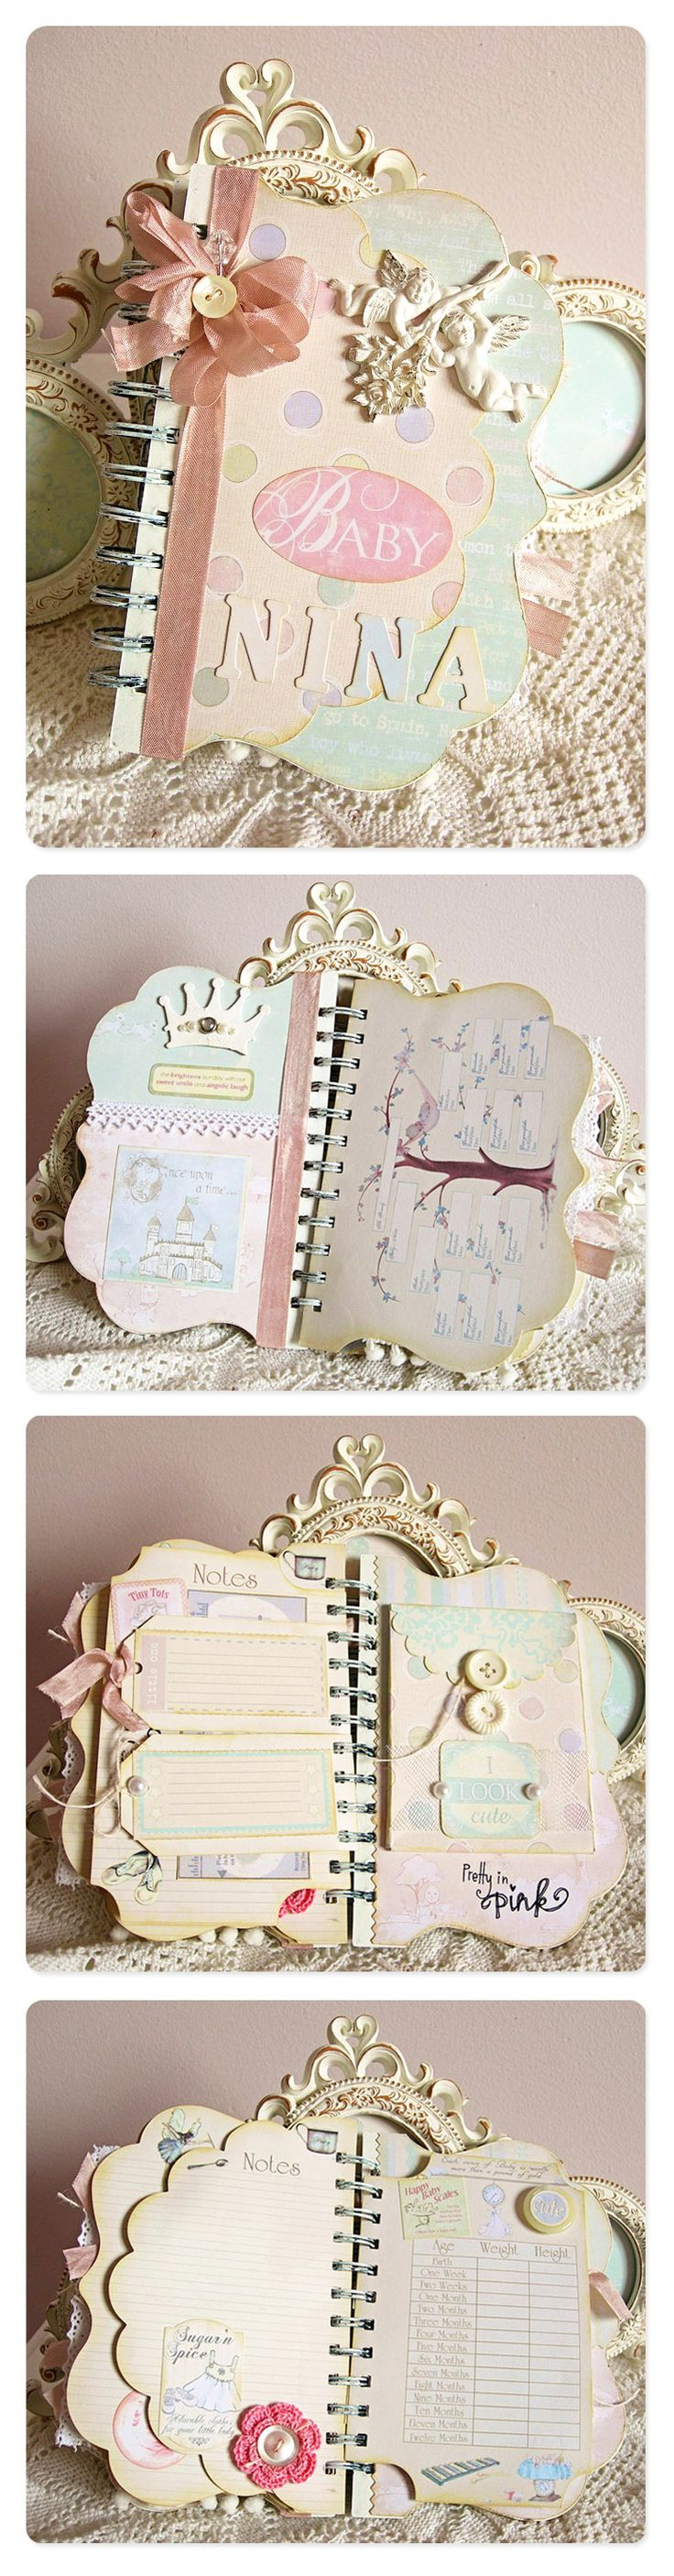 a Russian woman, Yanna, made this baby album